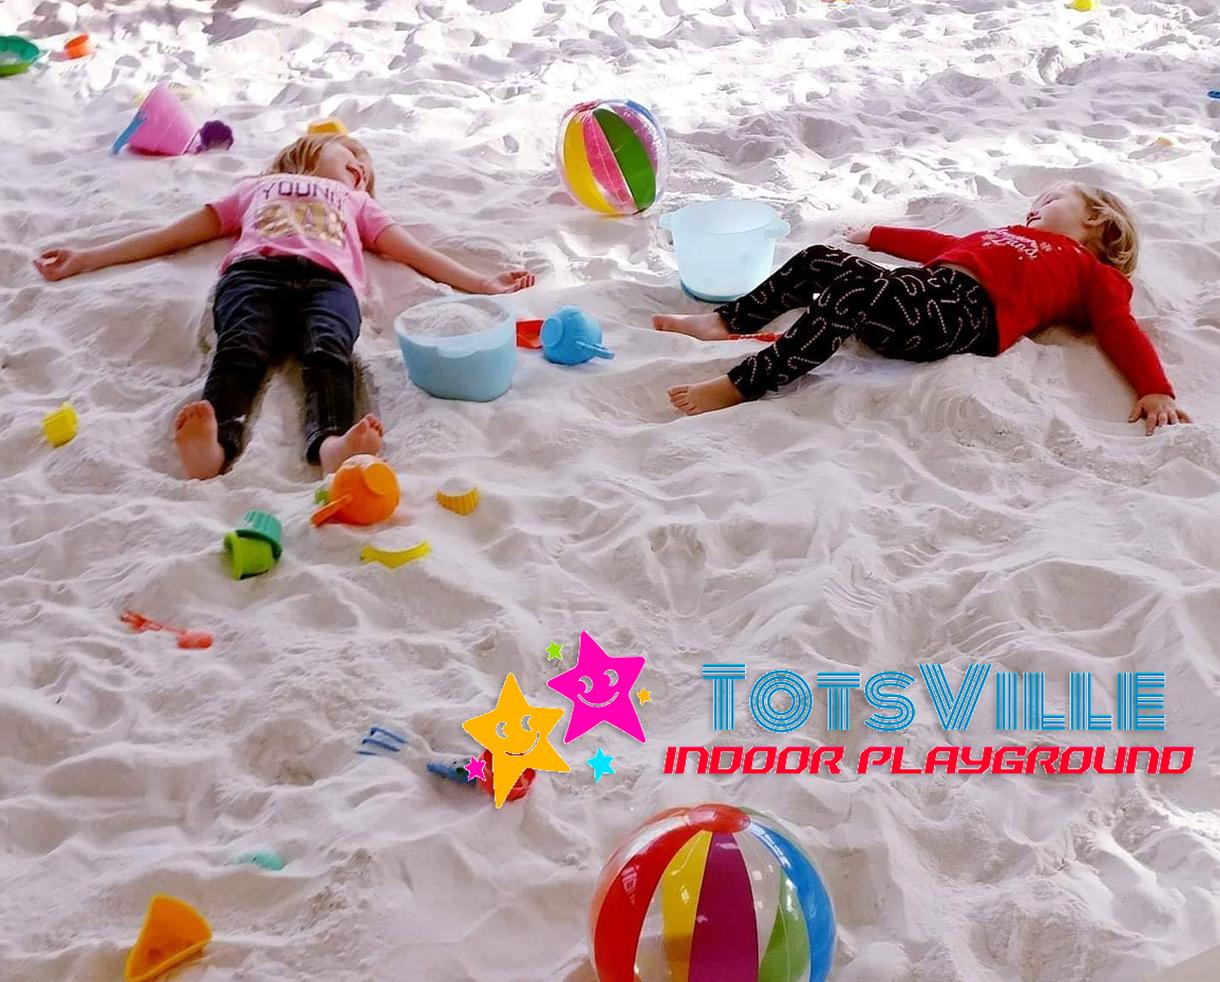 Totsville Indoor Playground Weekday Admission